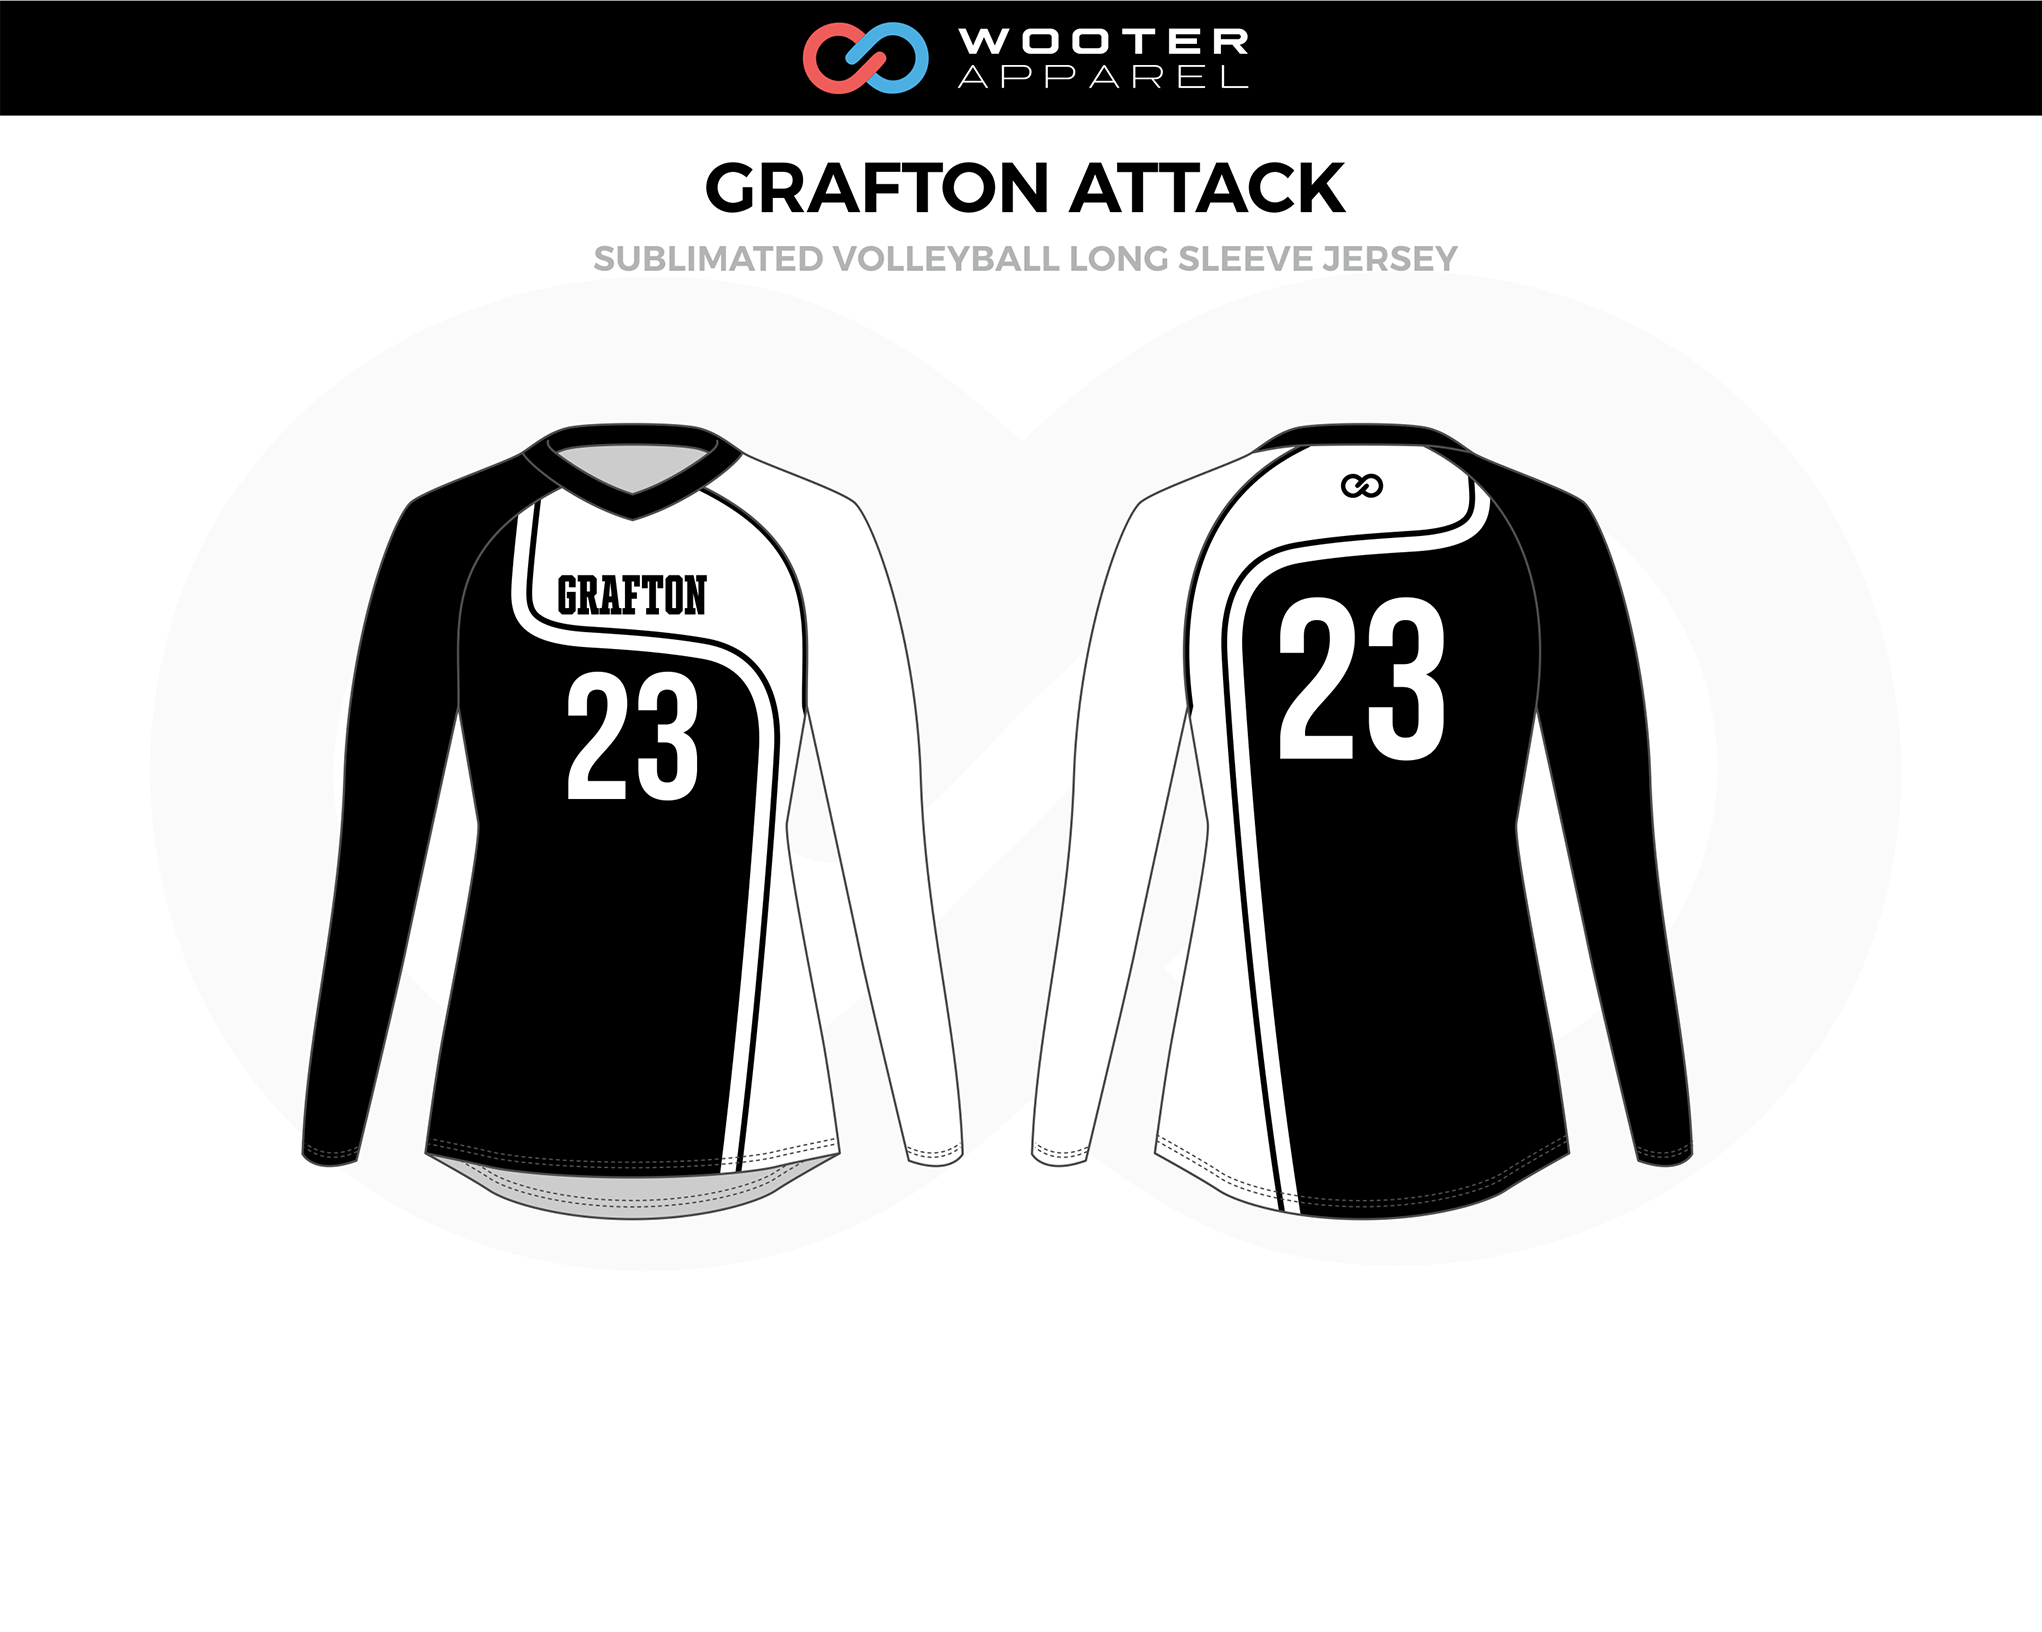 04_03_Grafton Attack Volleyball.png